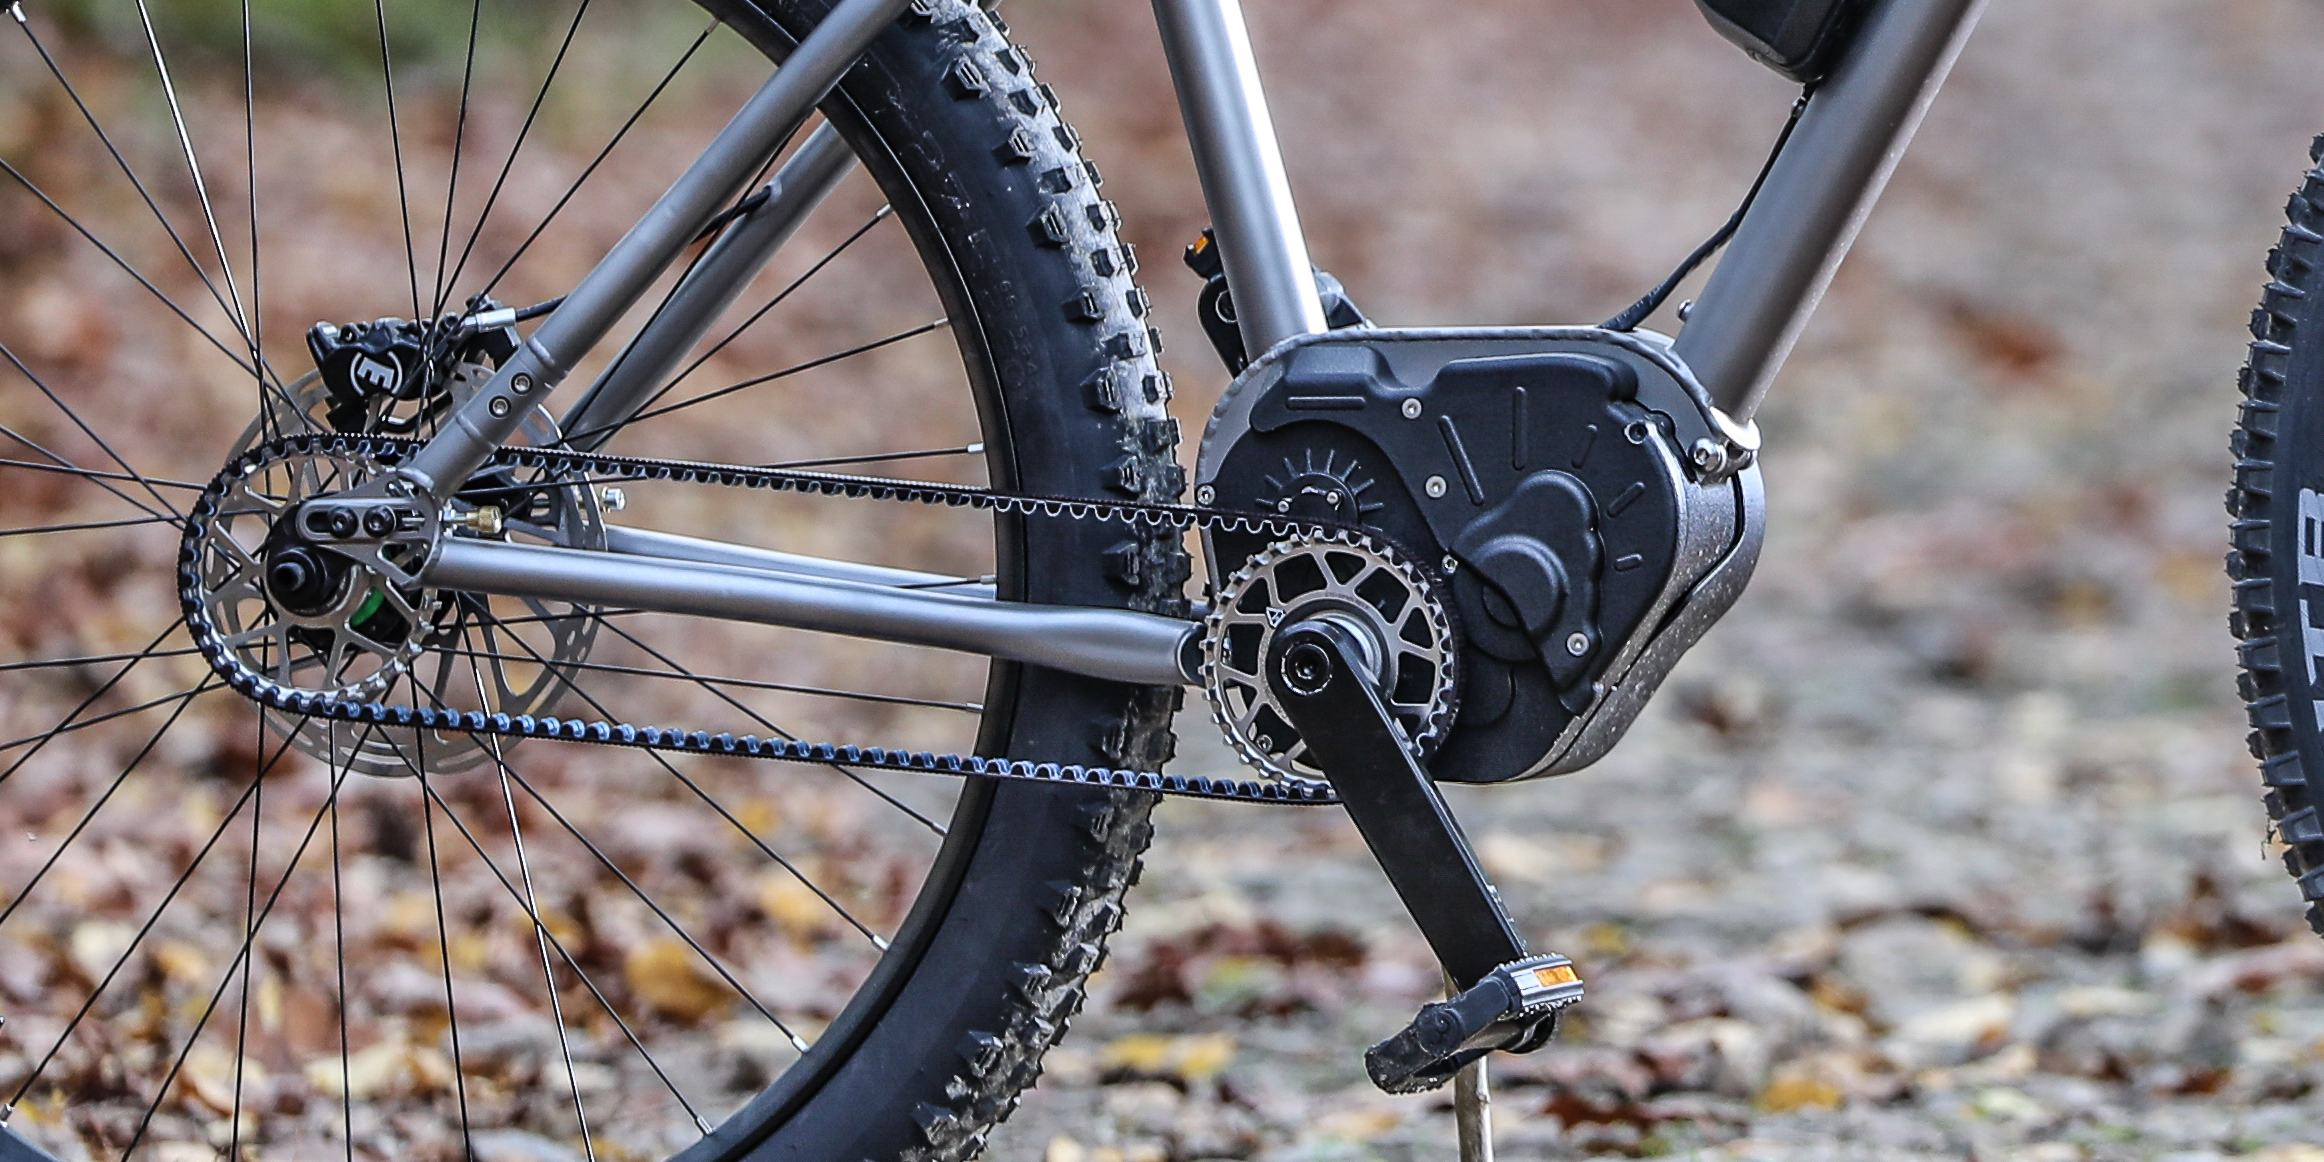 New Electric Bike Mid Drive Systems Adds Automatic Transmission To Motor